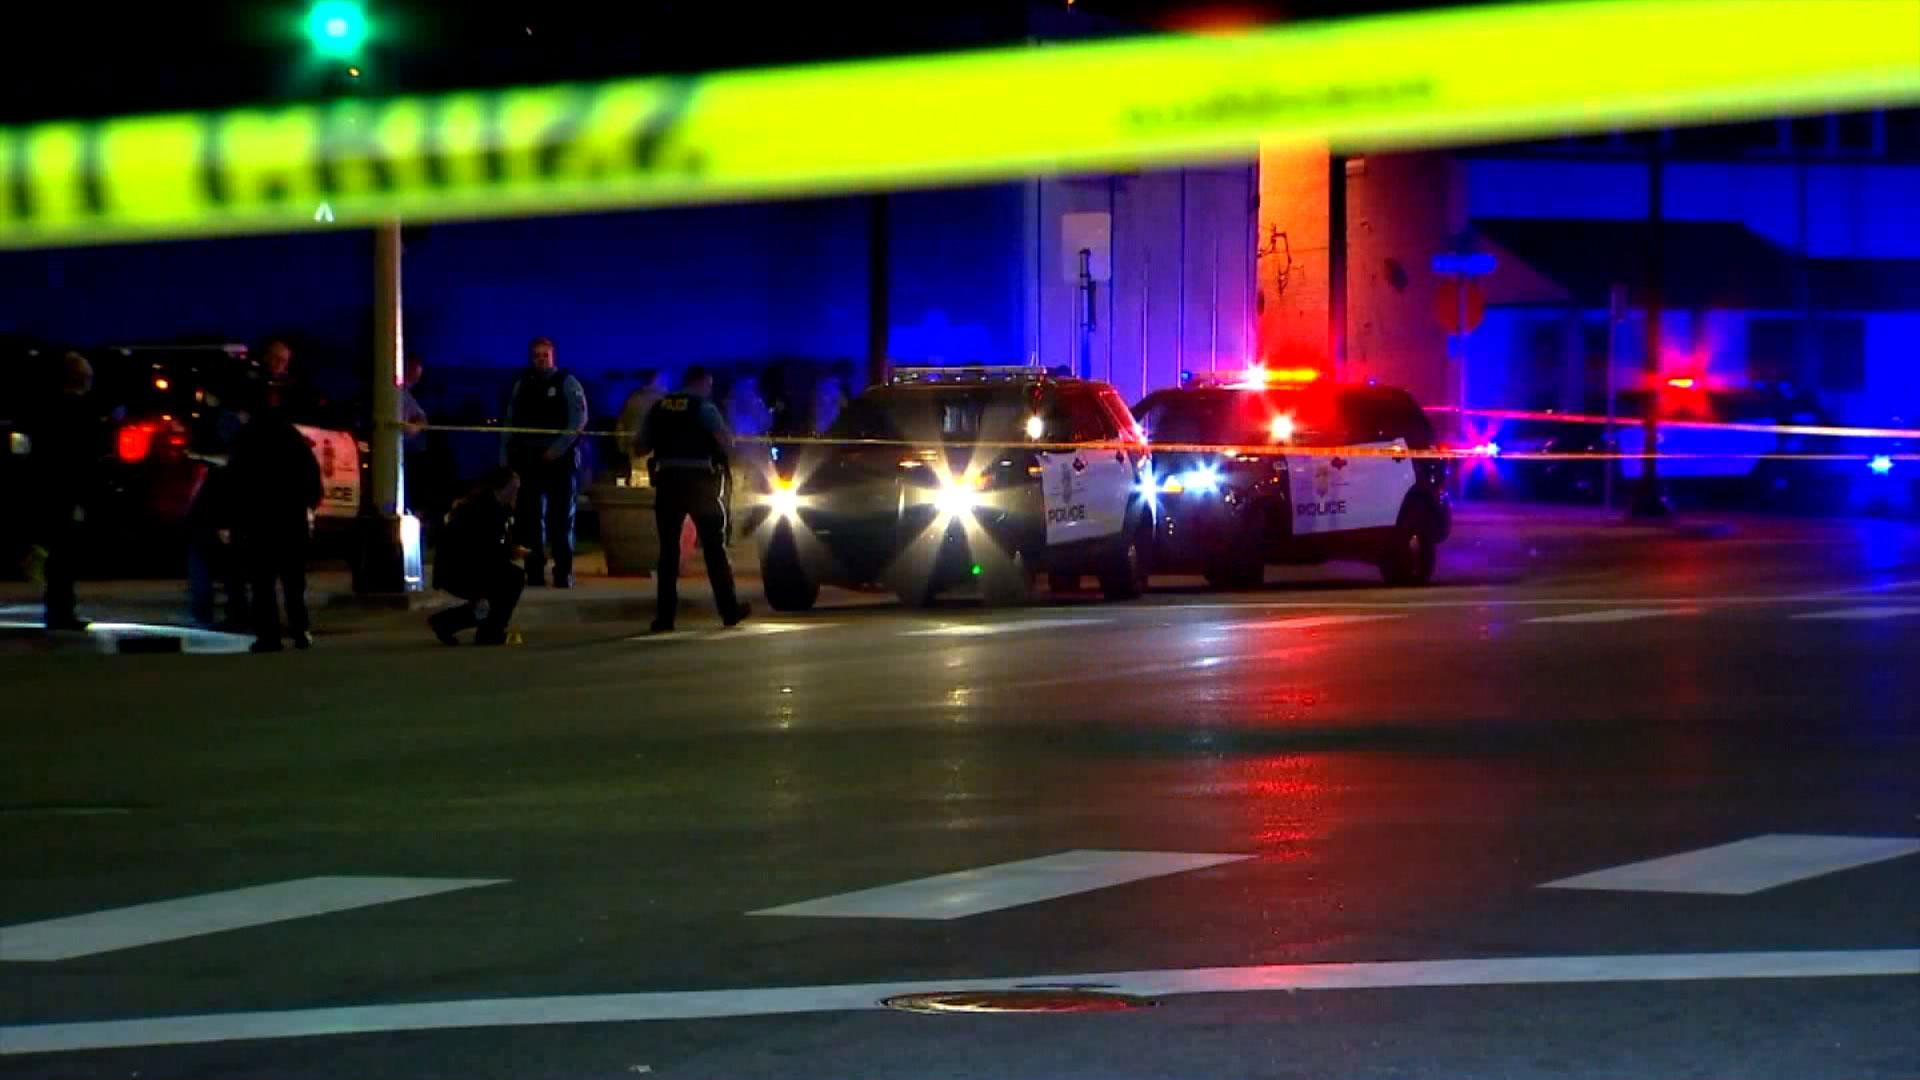 A Minnesota National Guard and police team were shot at in a drive-by shooting, official says